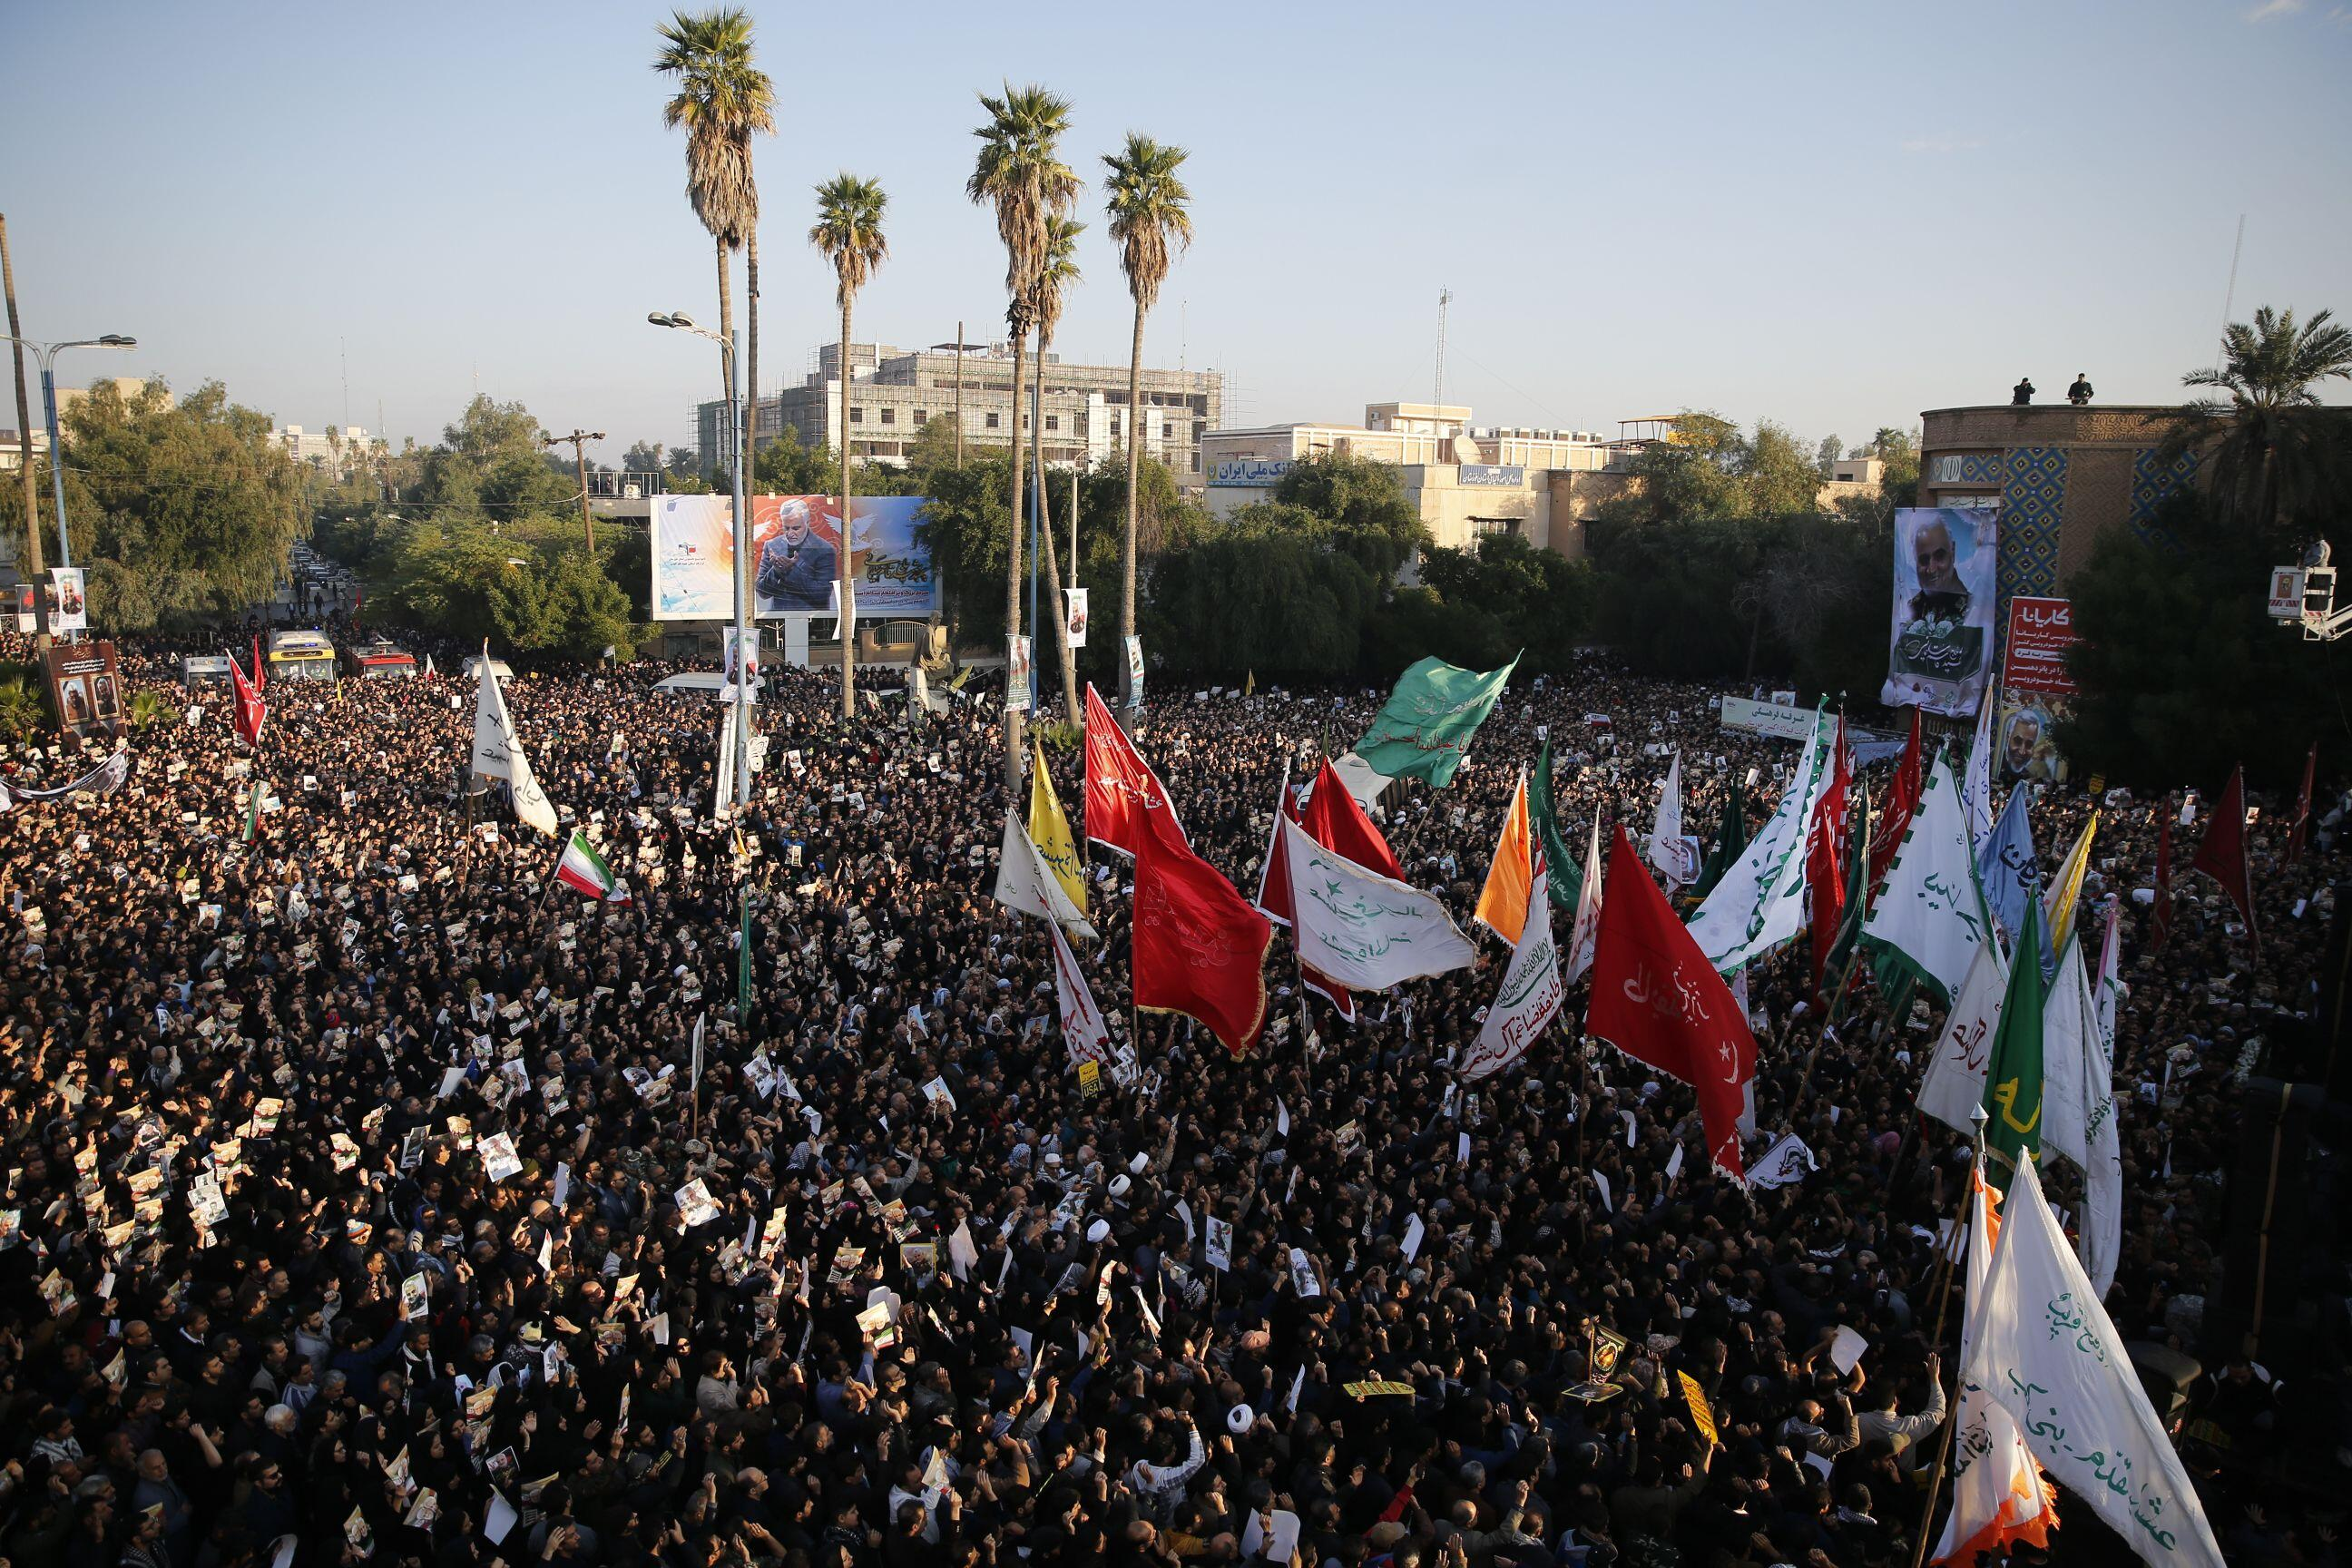 Iranians march in the streets to pay homage to General Qasem Soleimani